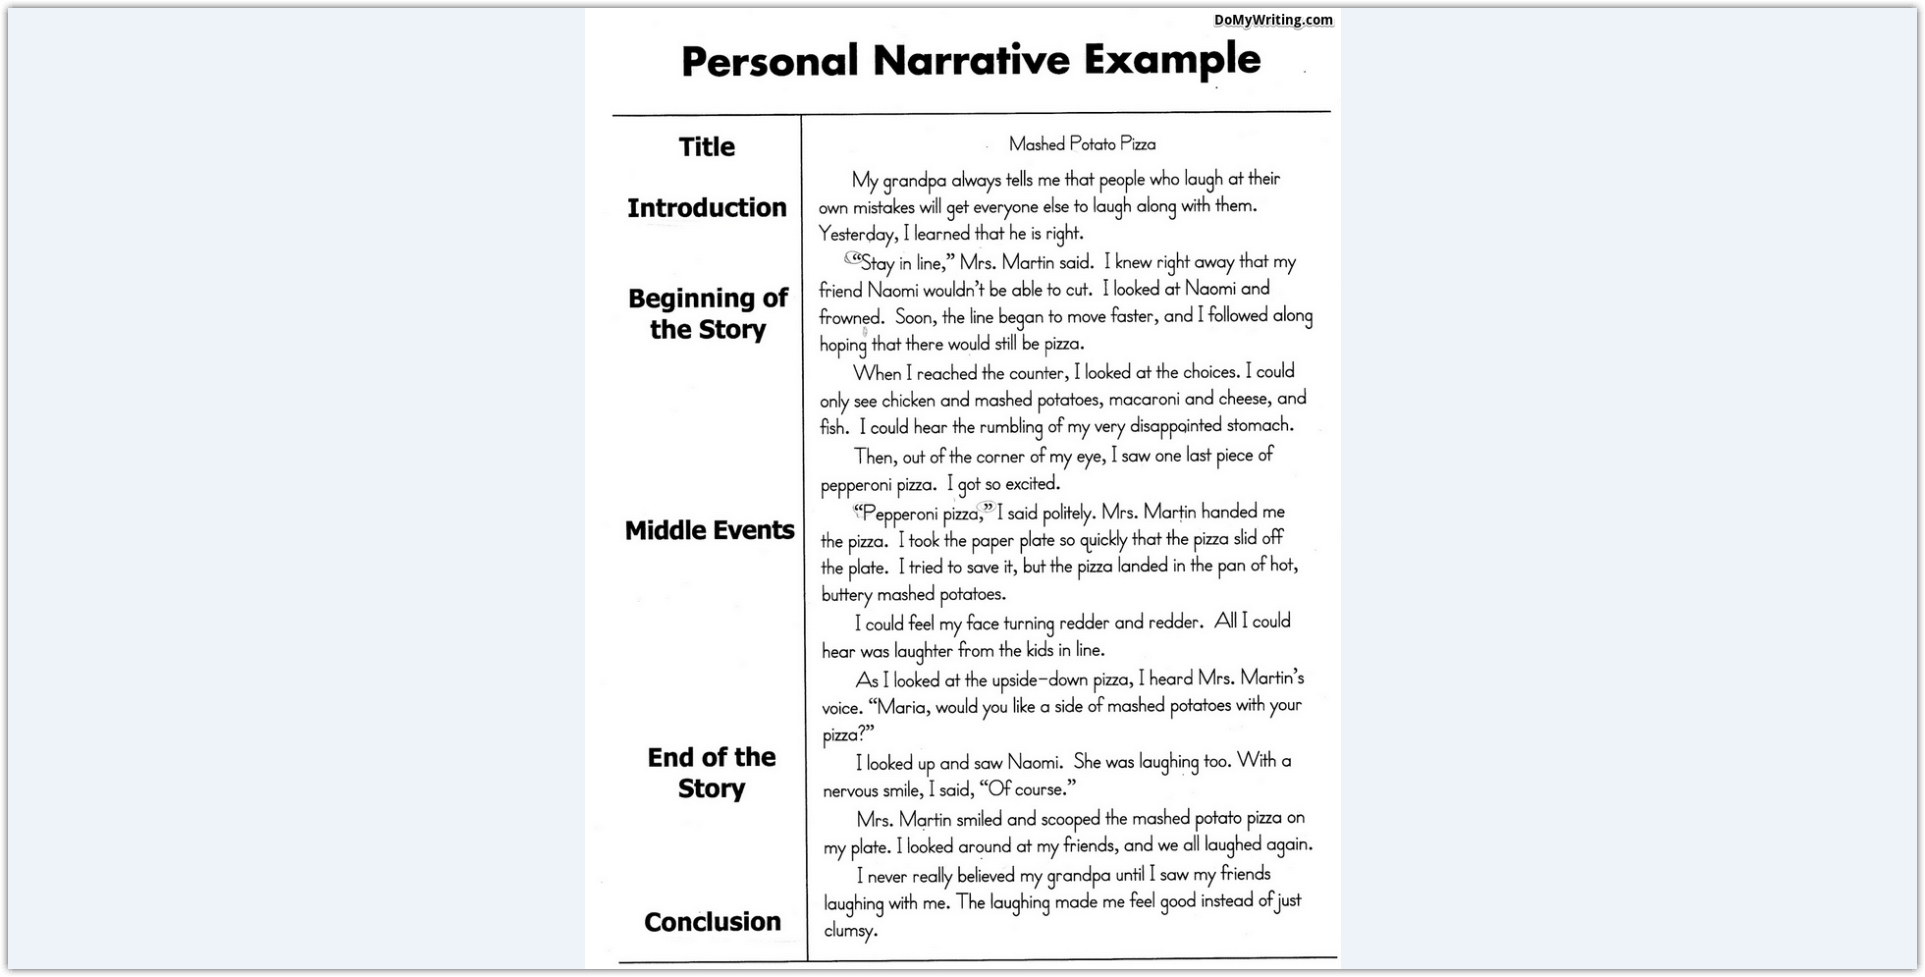 007 Narrative Essay Breathtaking Example Examples For High School 5th Grade 12 Pdf Full